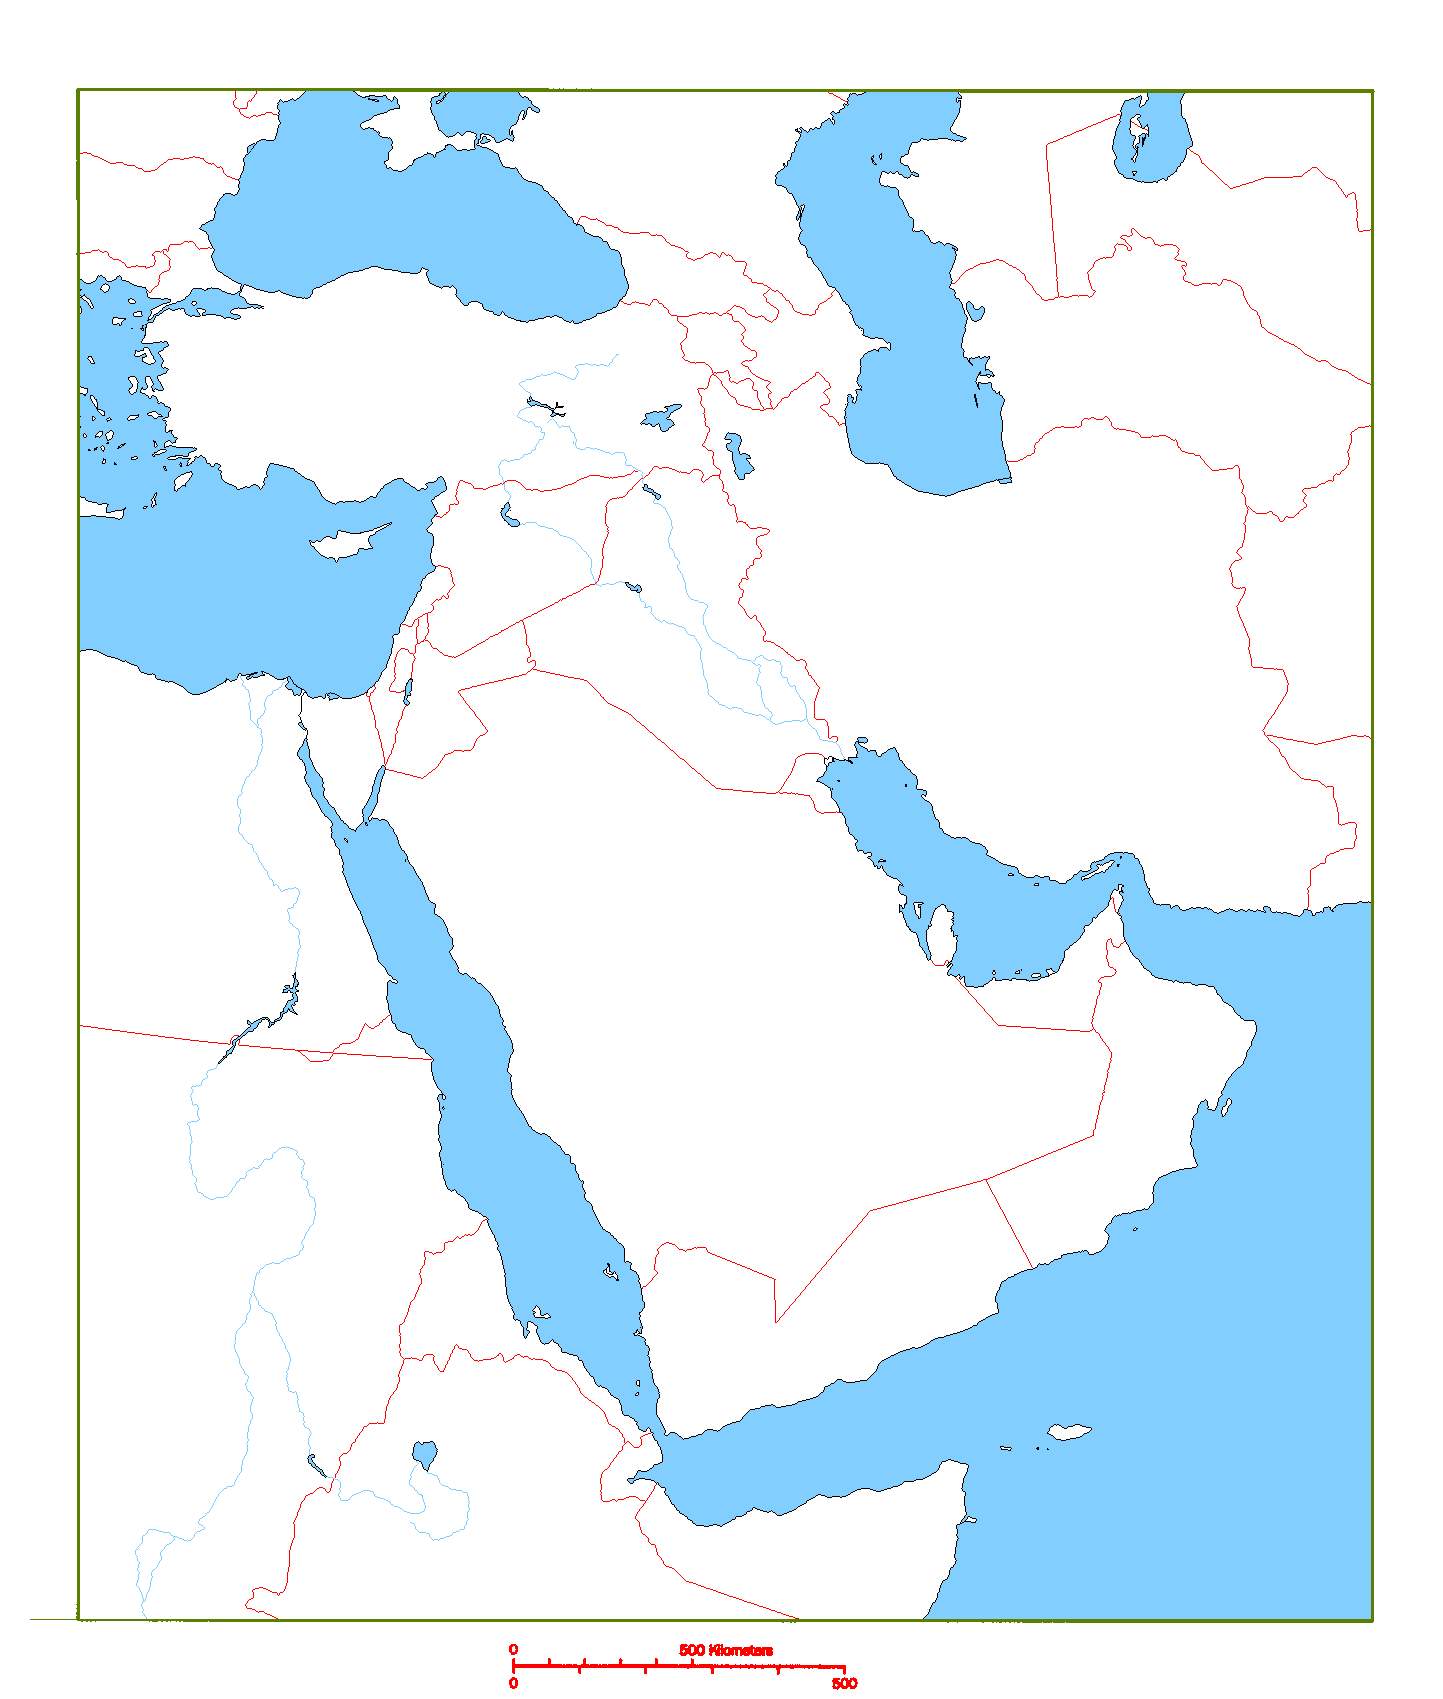 small resolution of blank map of middle east   Middle east map